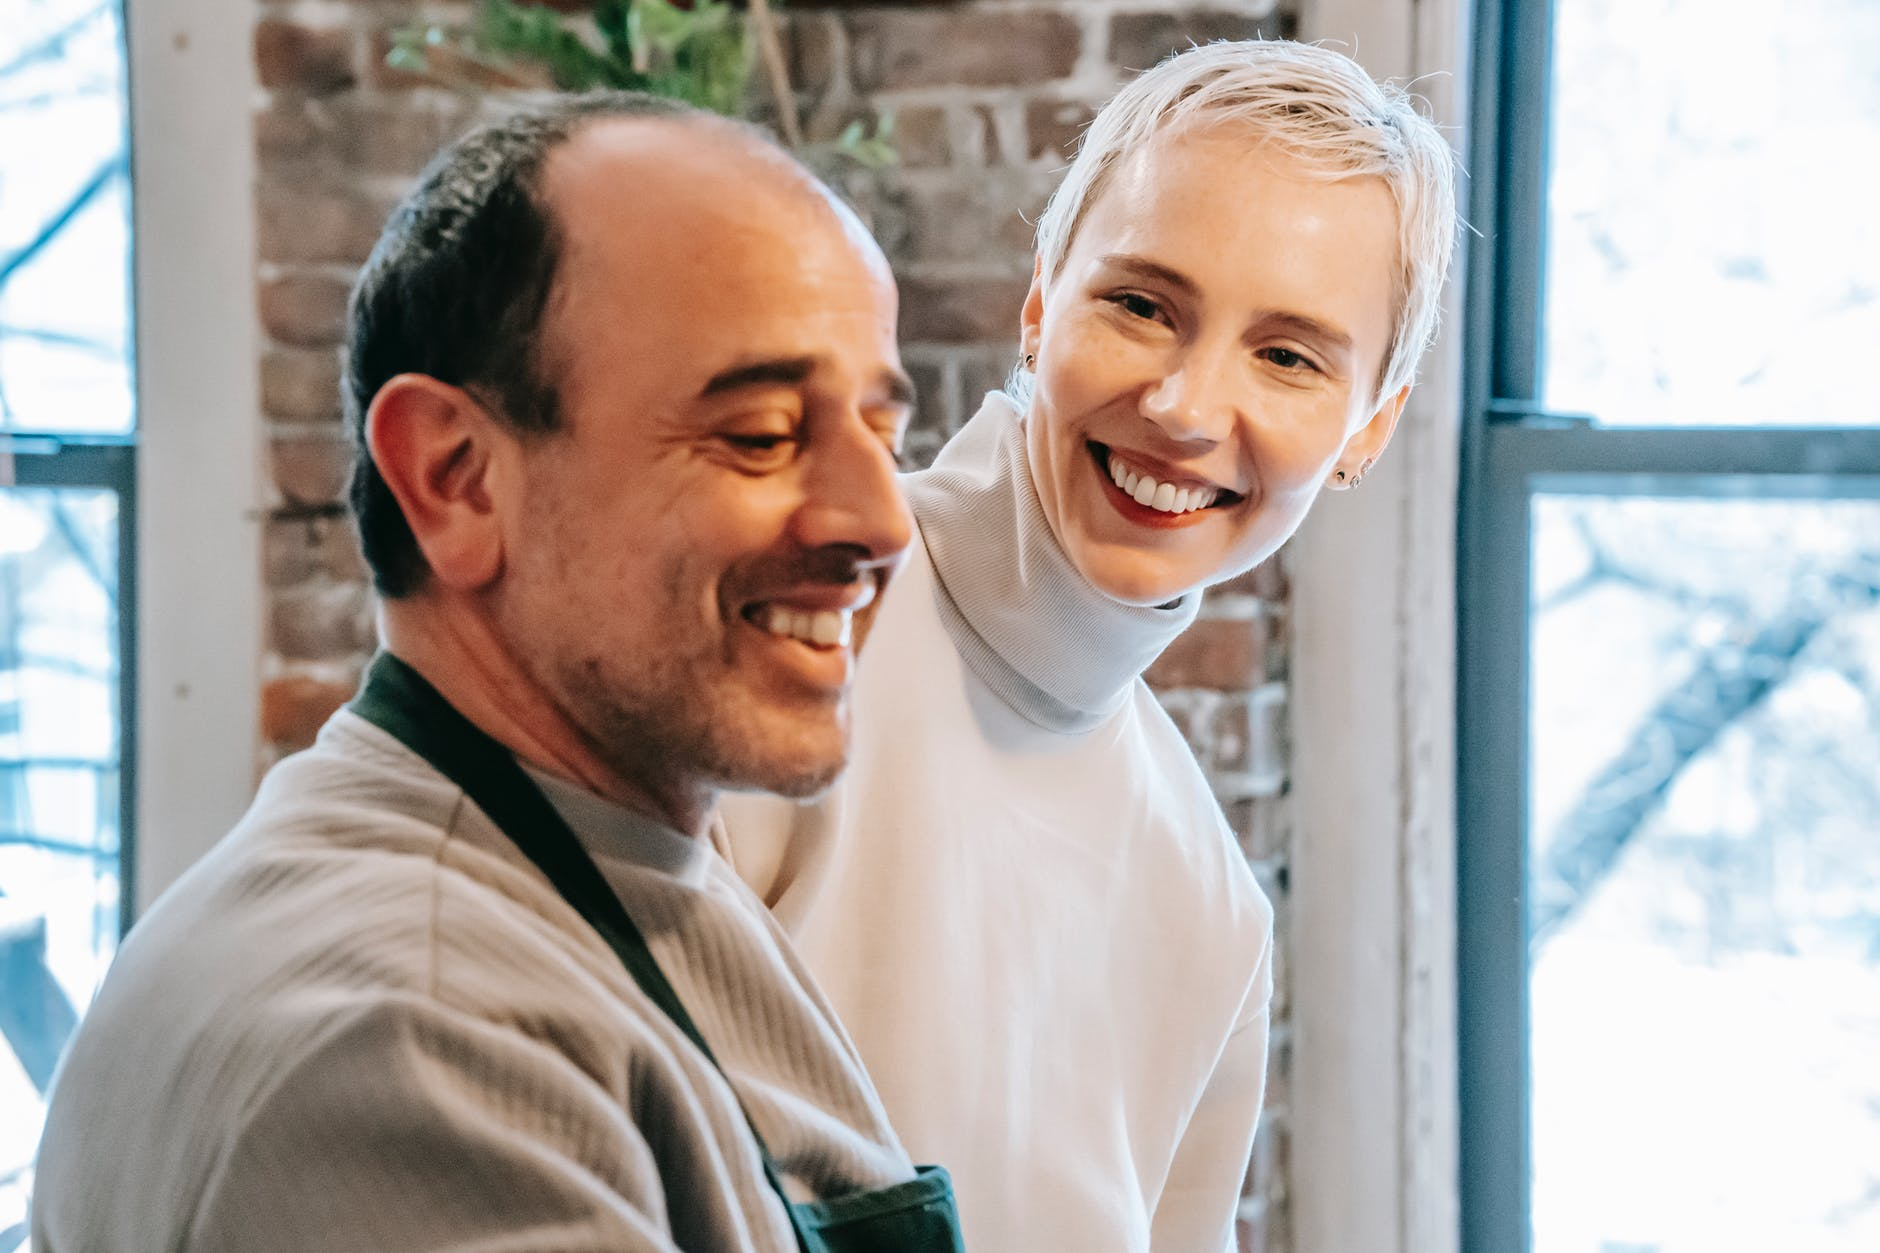 A woman smiling at a smiling man beside her. | Source: Pexels